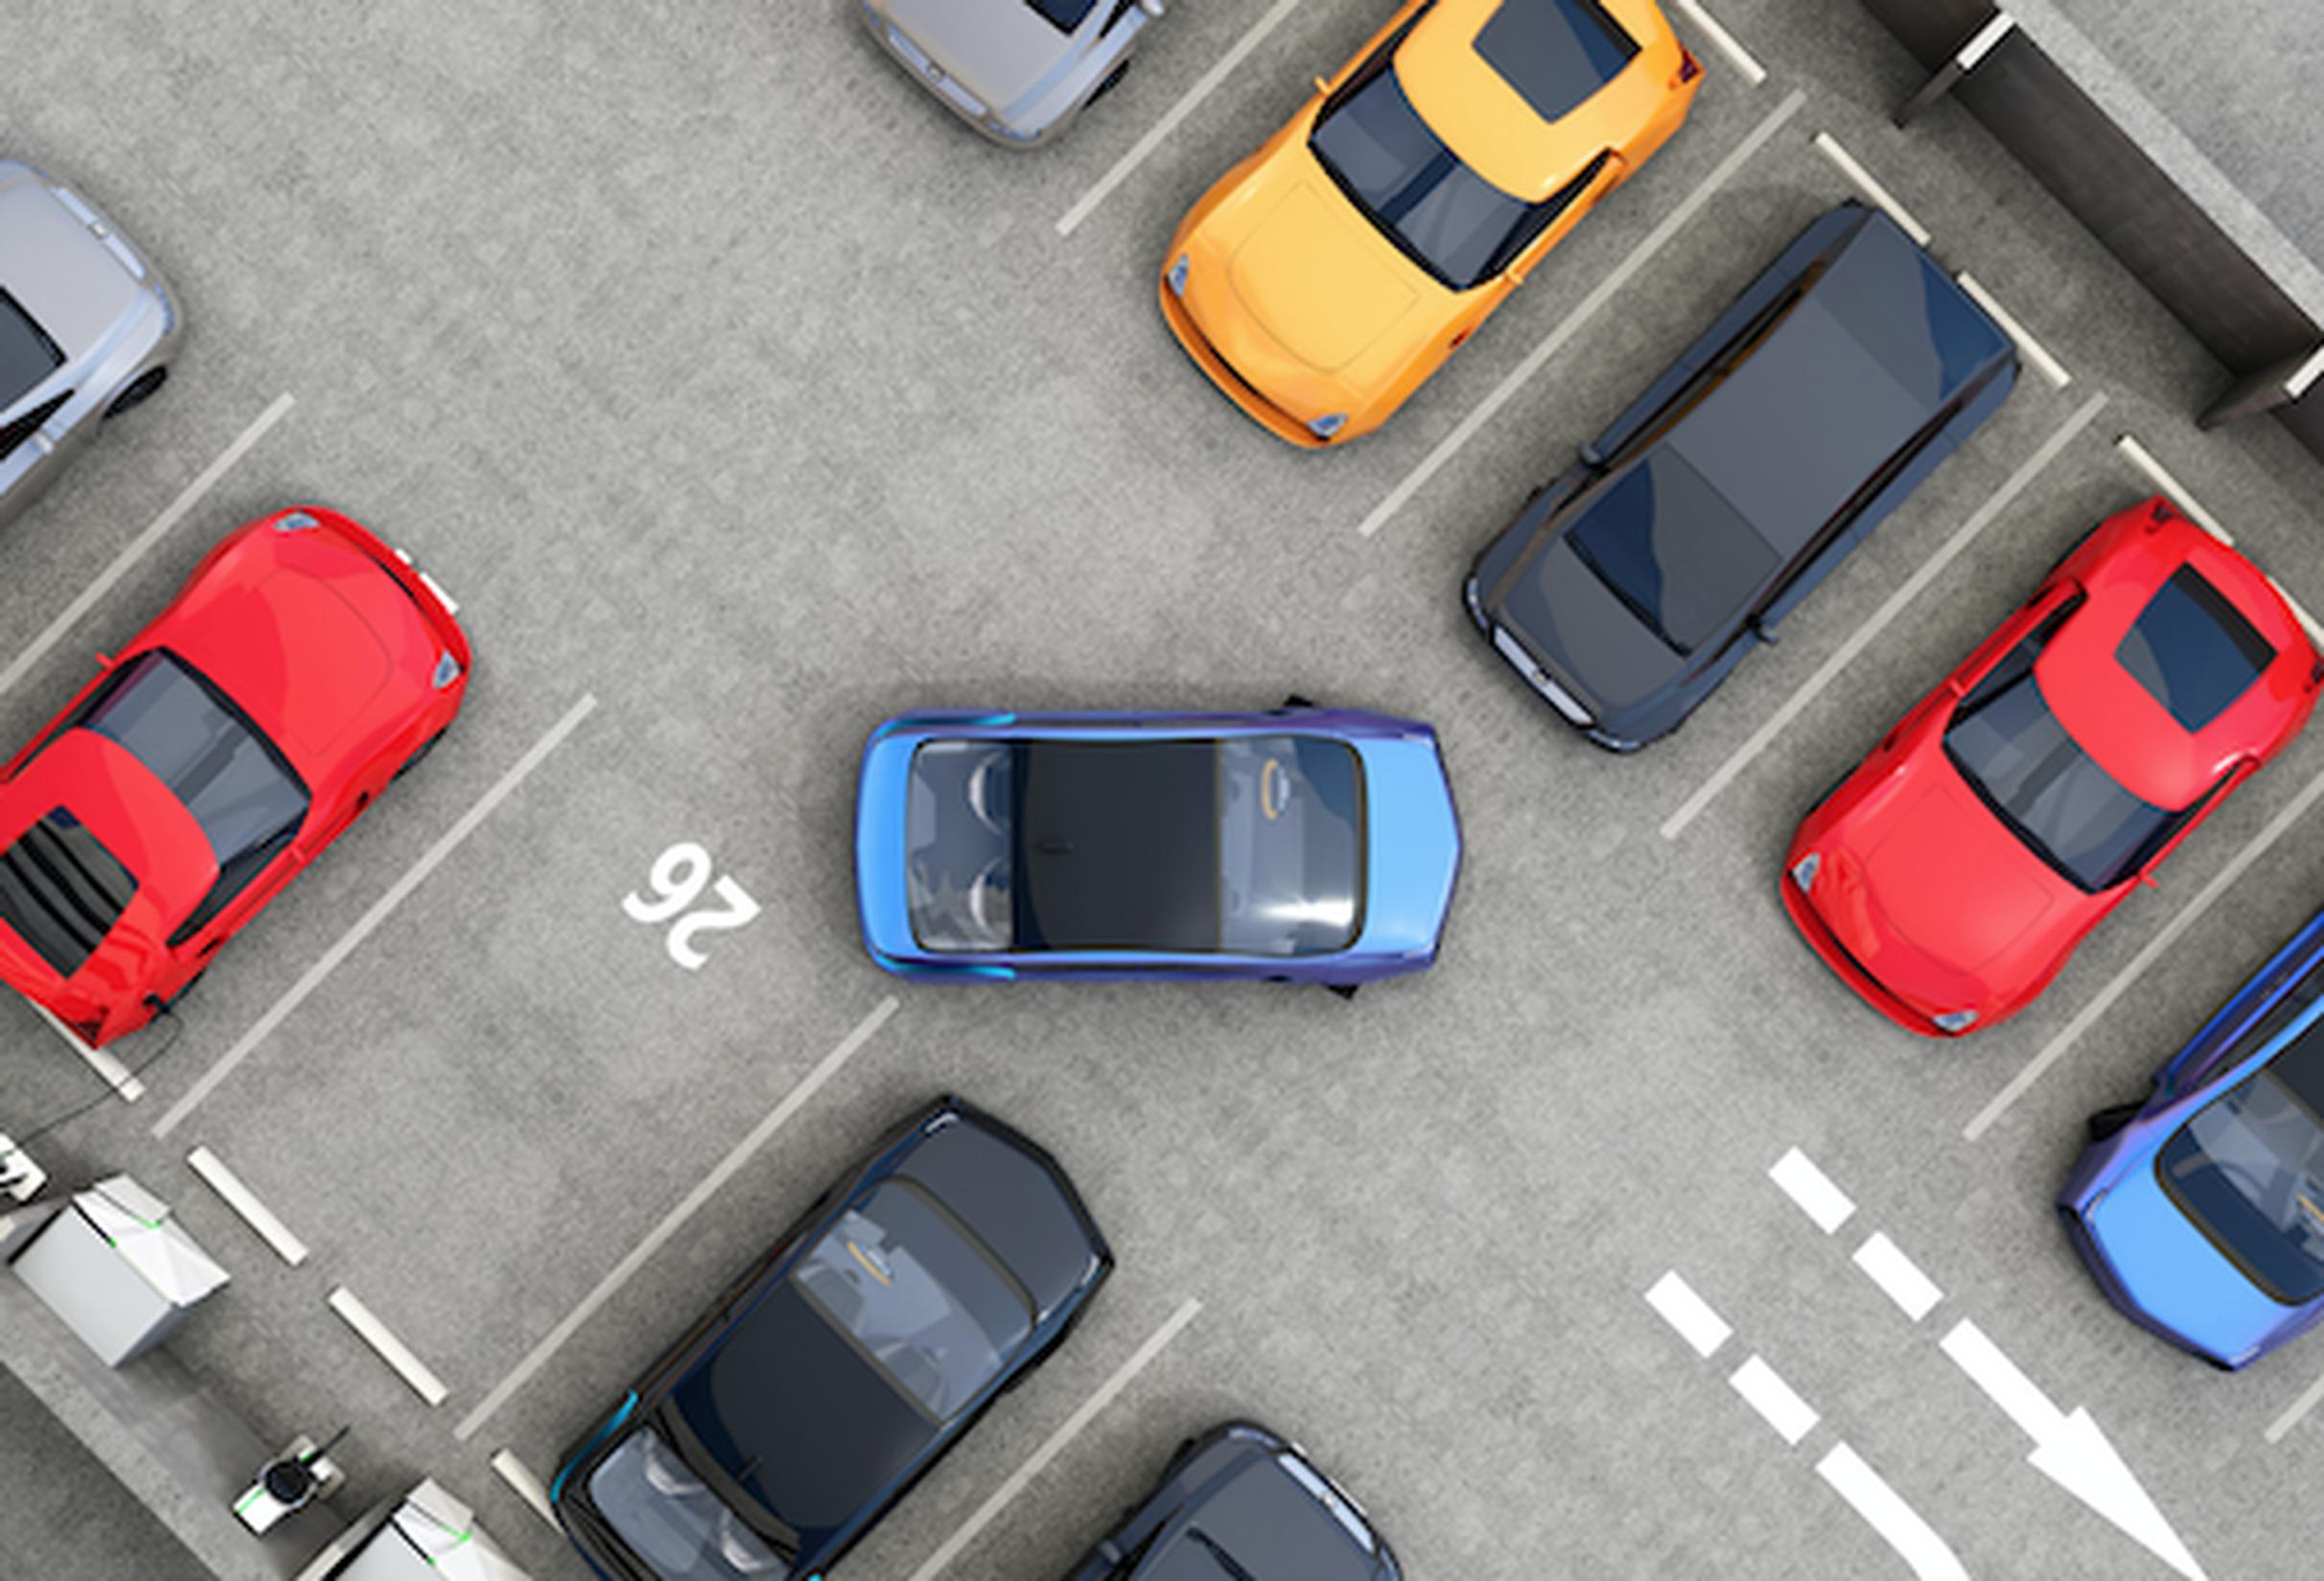 Steer Davies Gleave has partnered with KPMG to explore the potential impact of AVs on the parking sector